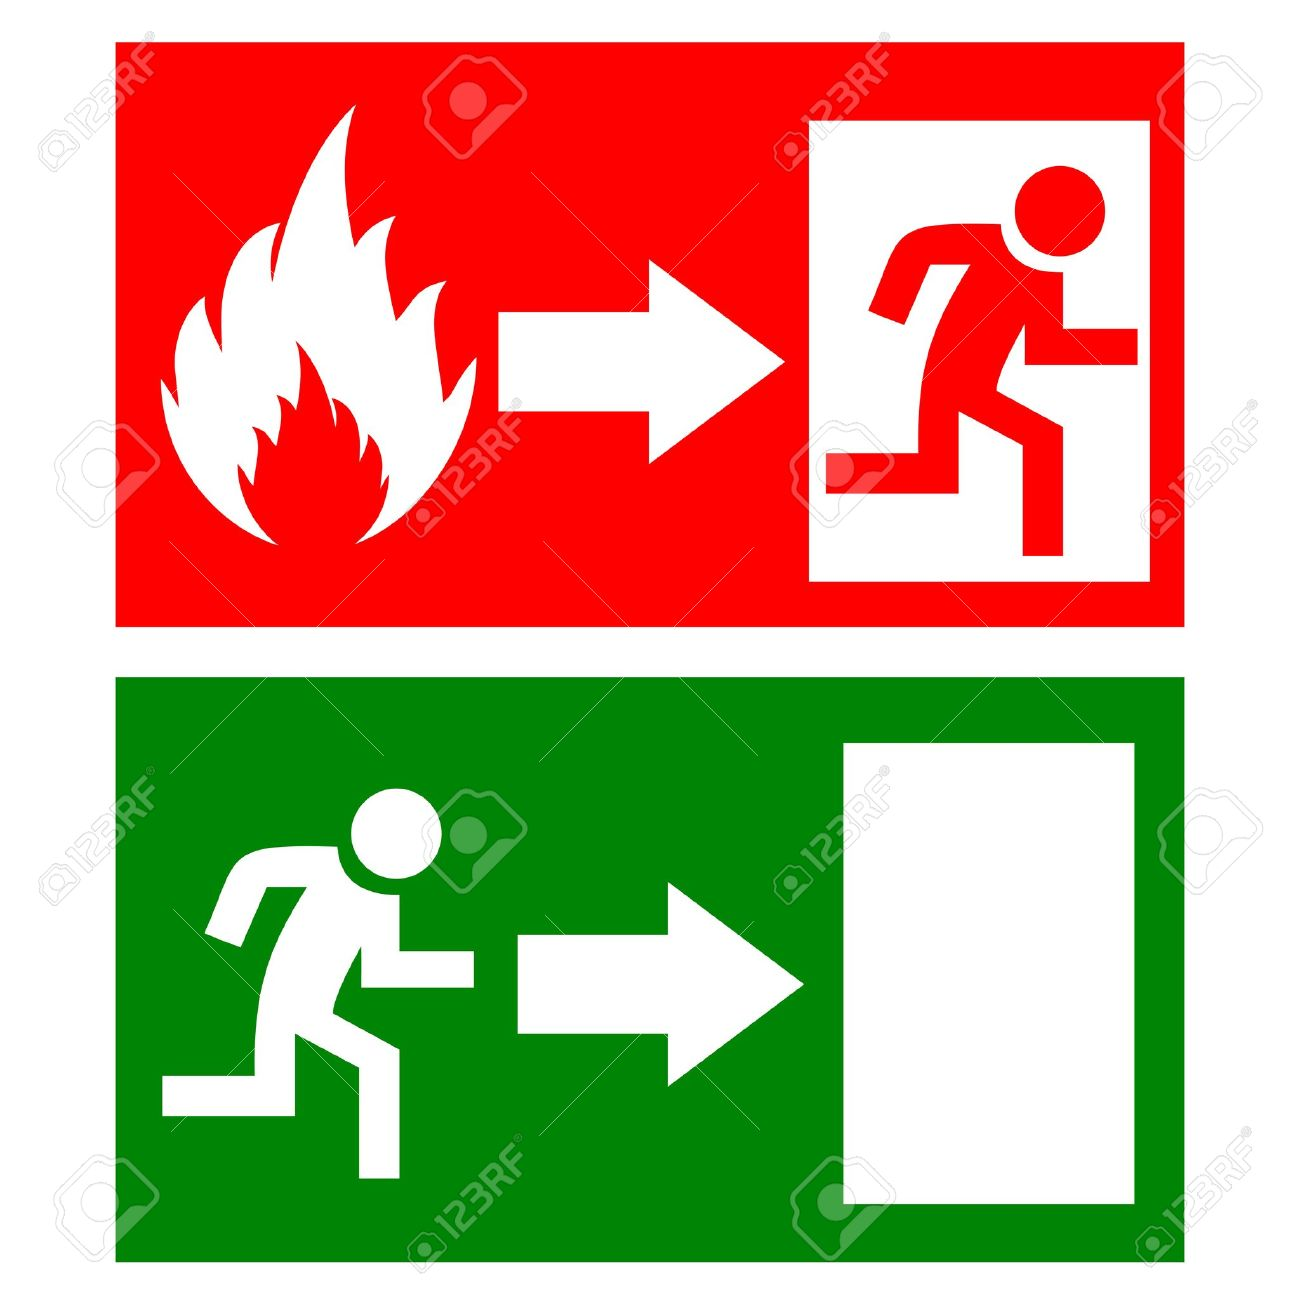 Fire exit signs Stock Vector - 20201817